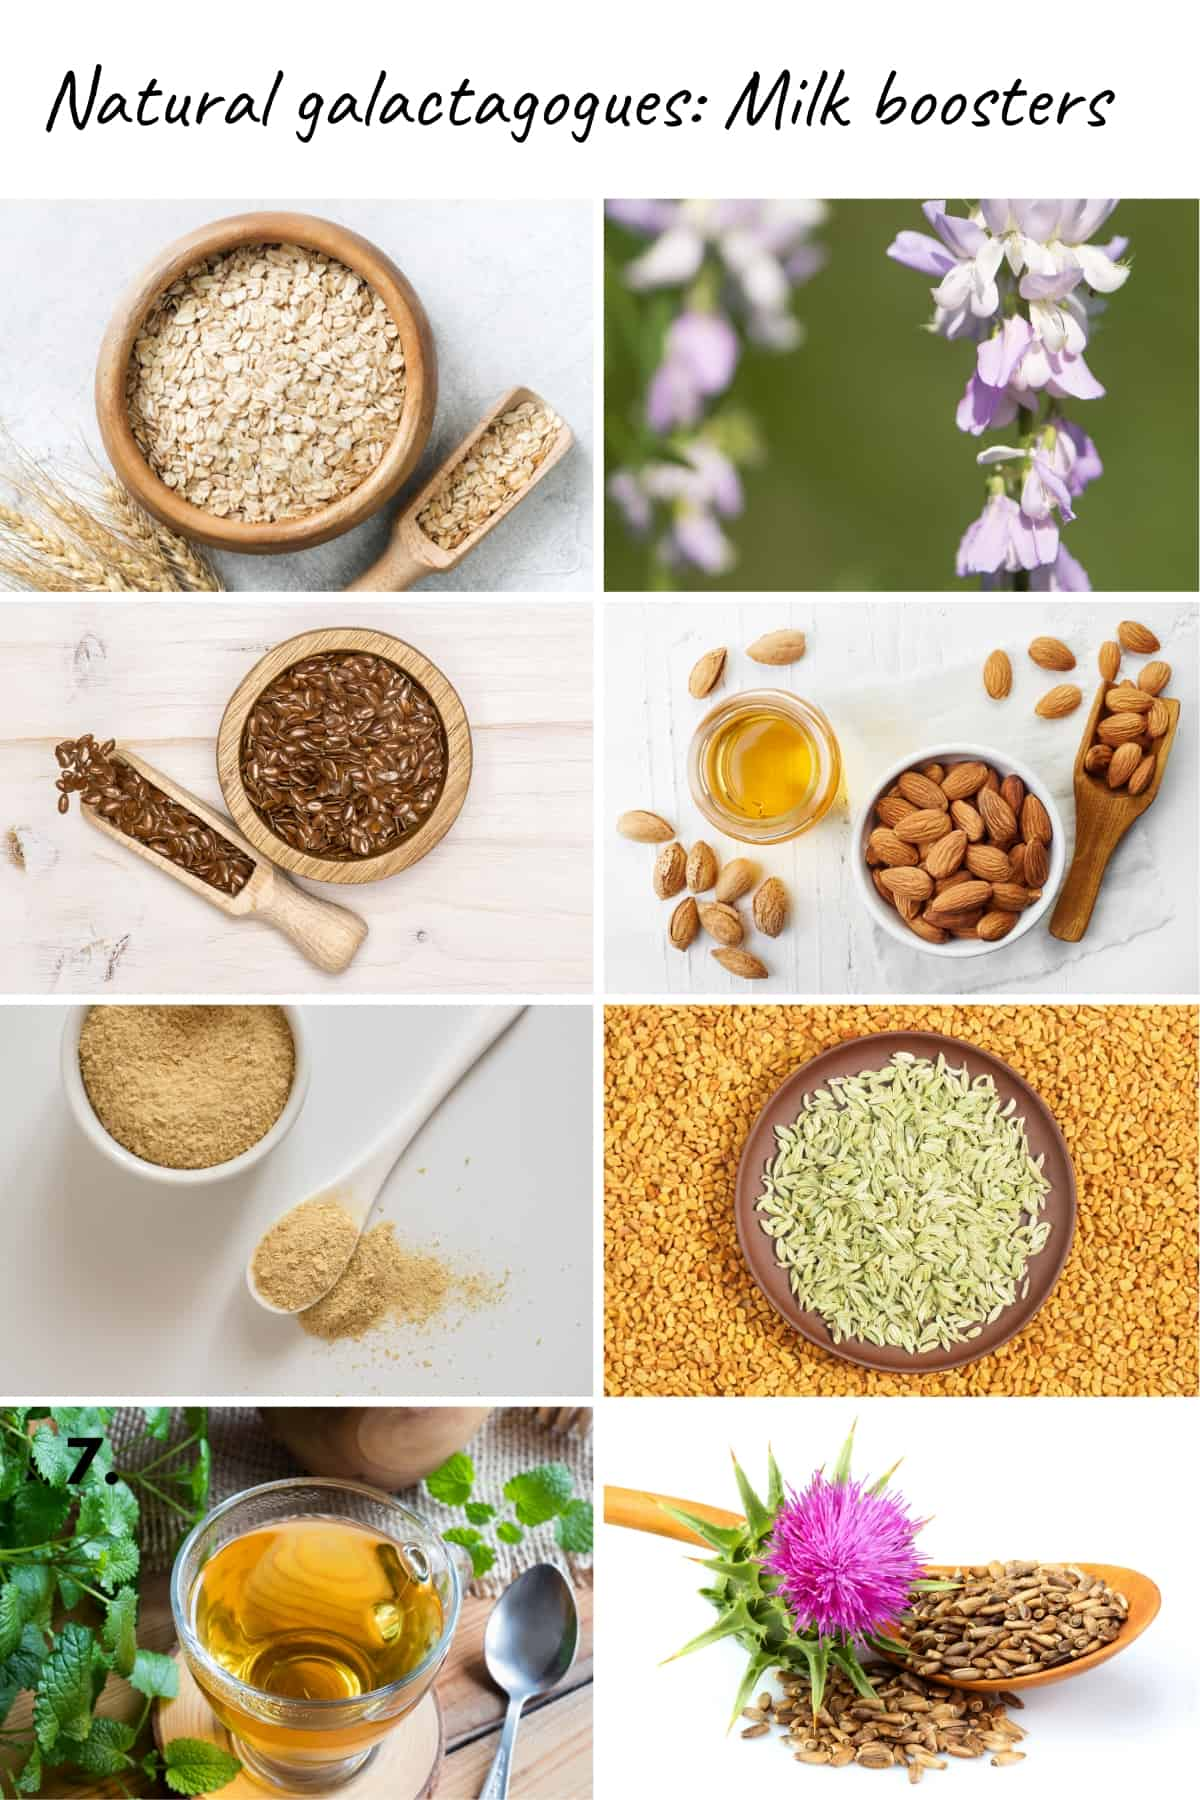 8 photo collage of natural galactagogues: Oats, goats rue, flax seed, almonds, fenugreek, fennel. brewers yeast, lemon balm, milk thistle